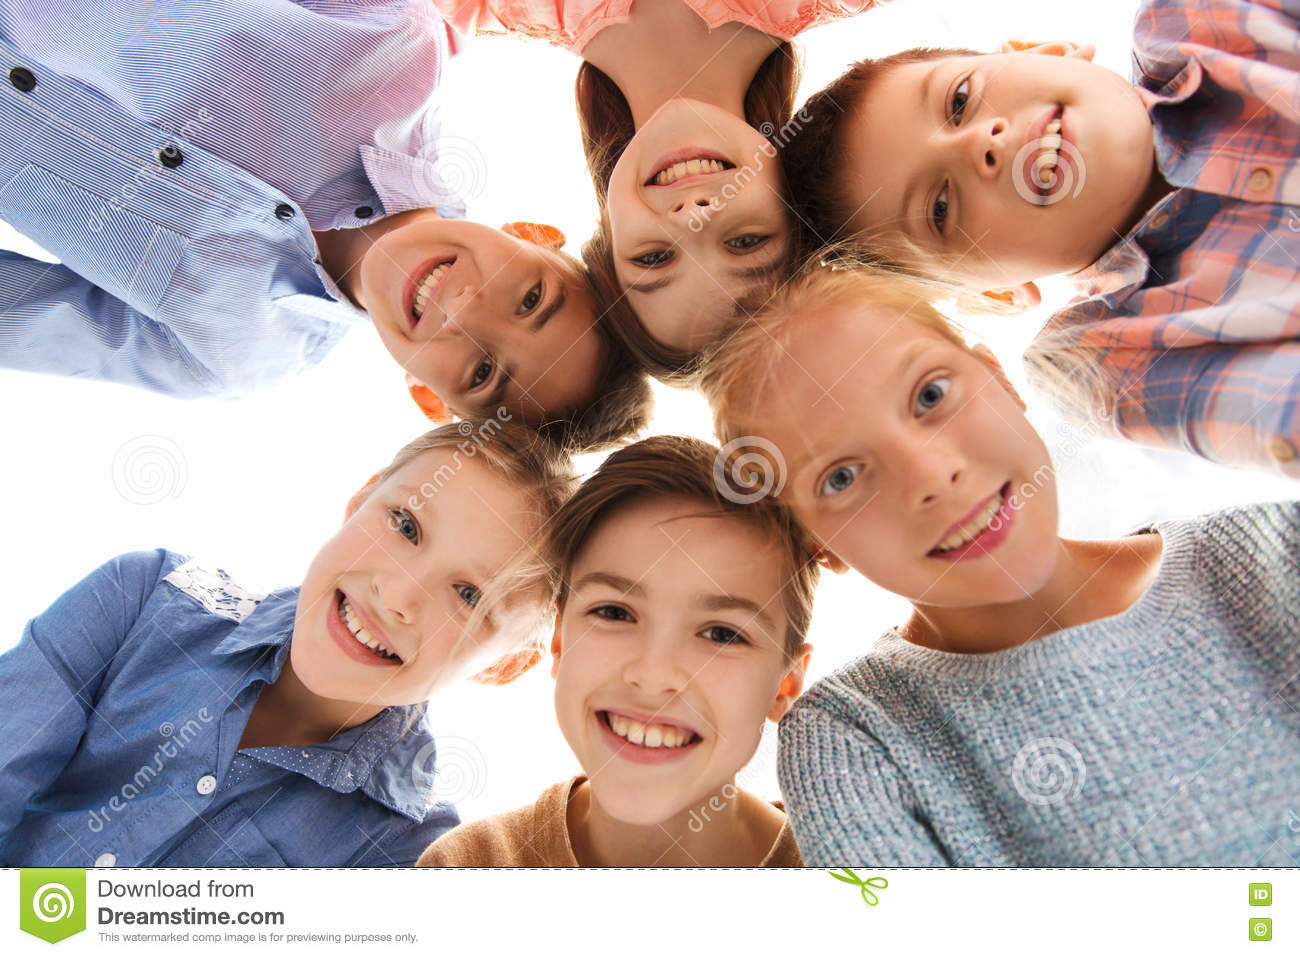 happy-smiling-children-faces-childhood-fashion-friendship-people-concept-71664262.jpg